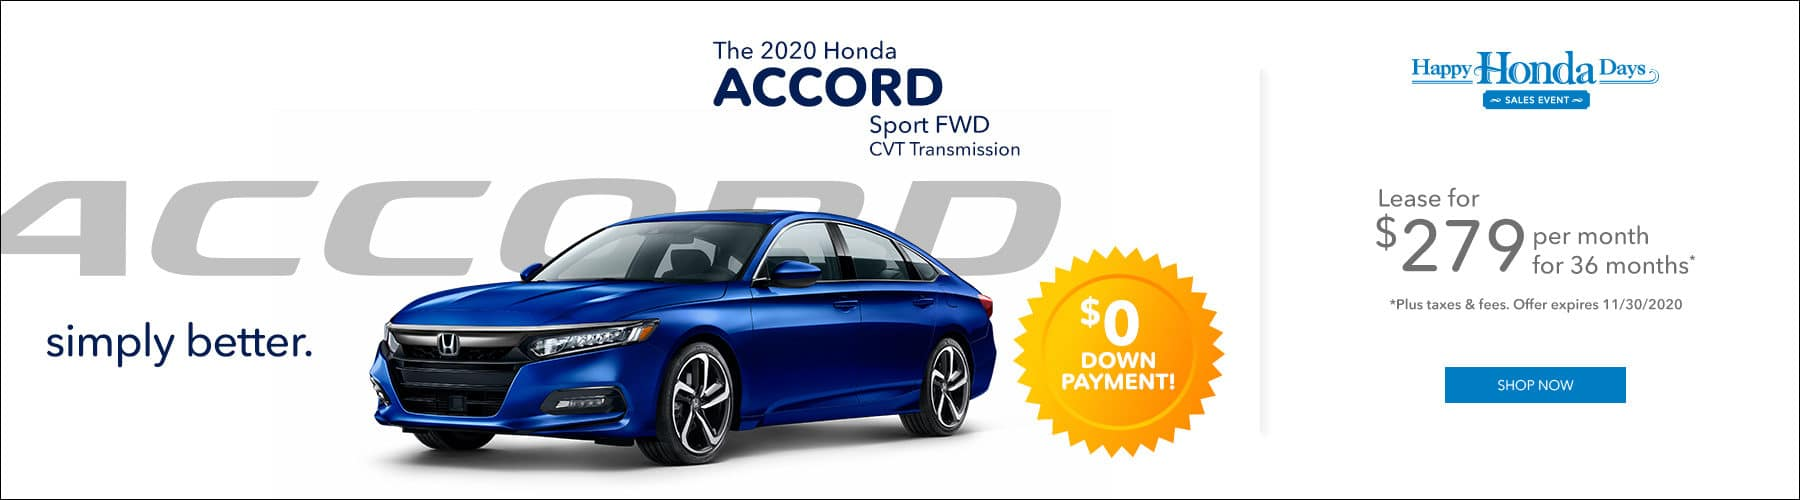 job_REHO_ACCORD_BANNER_11_2020